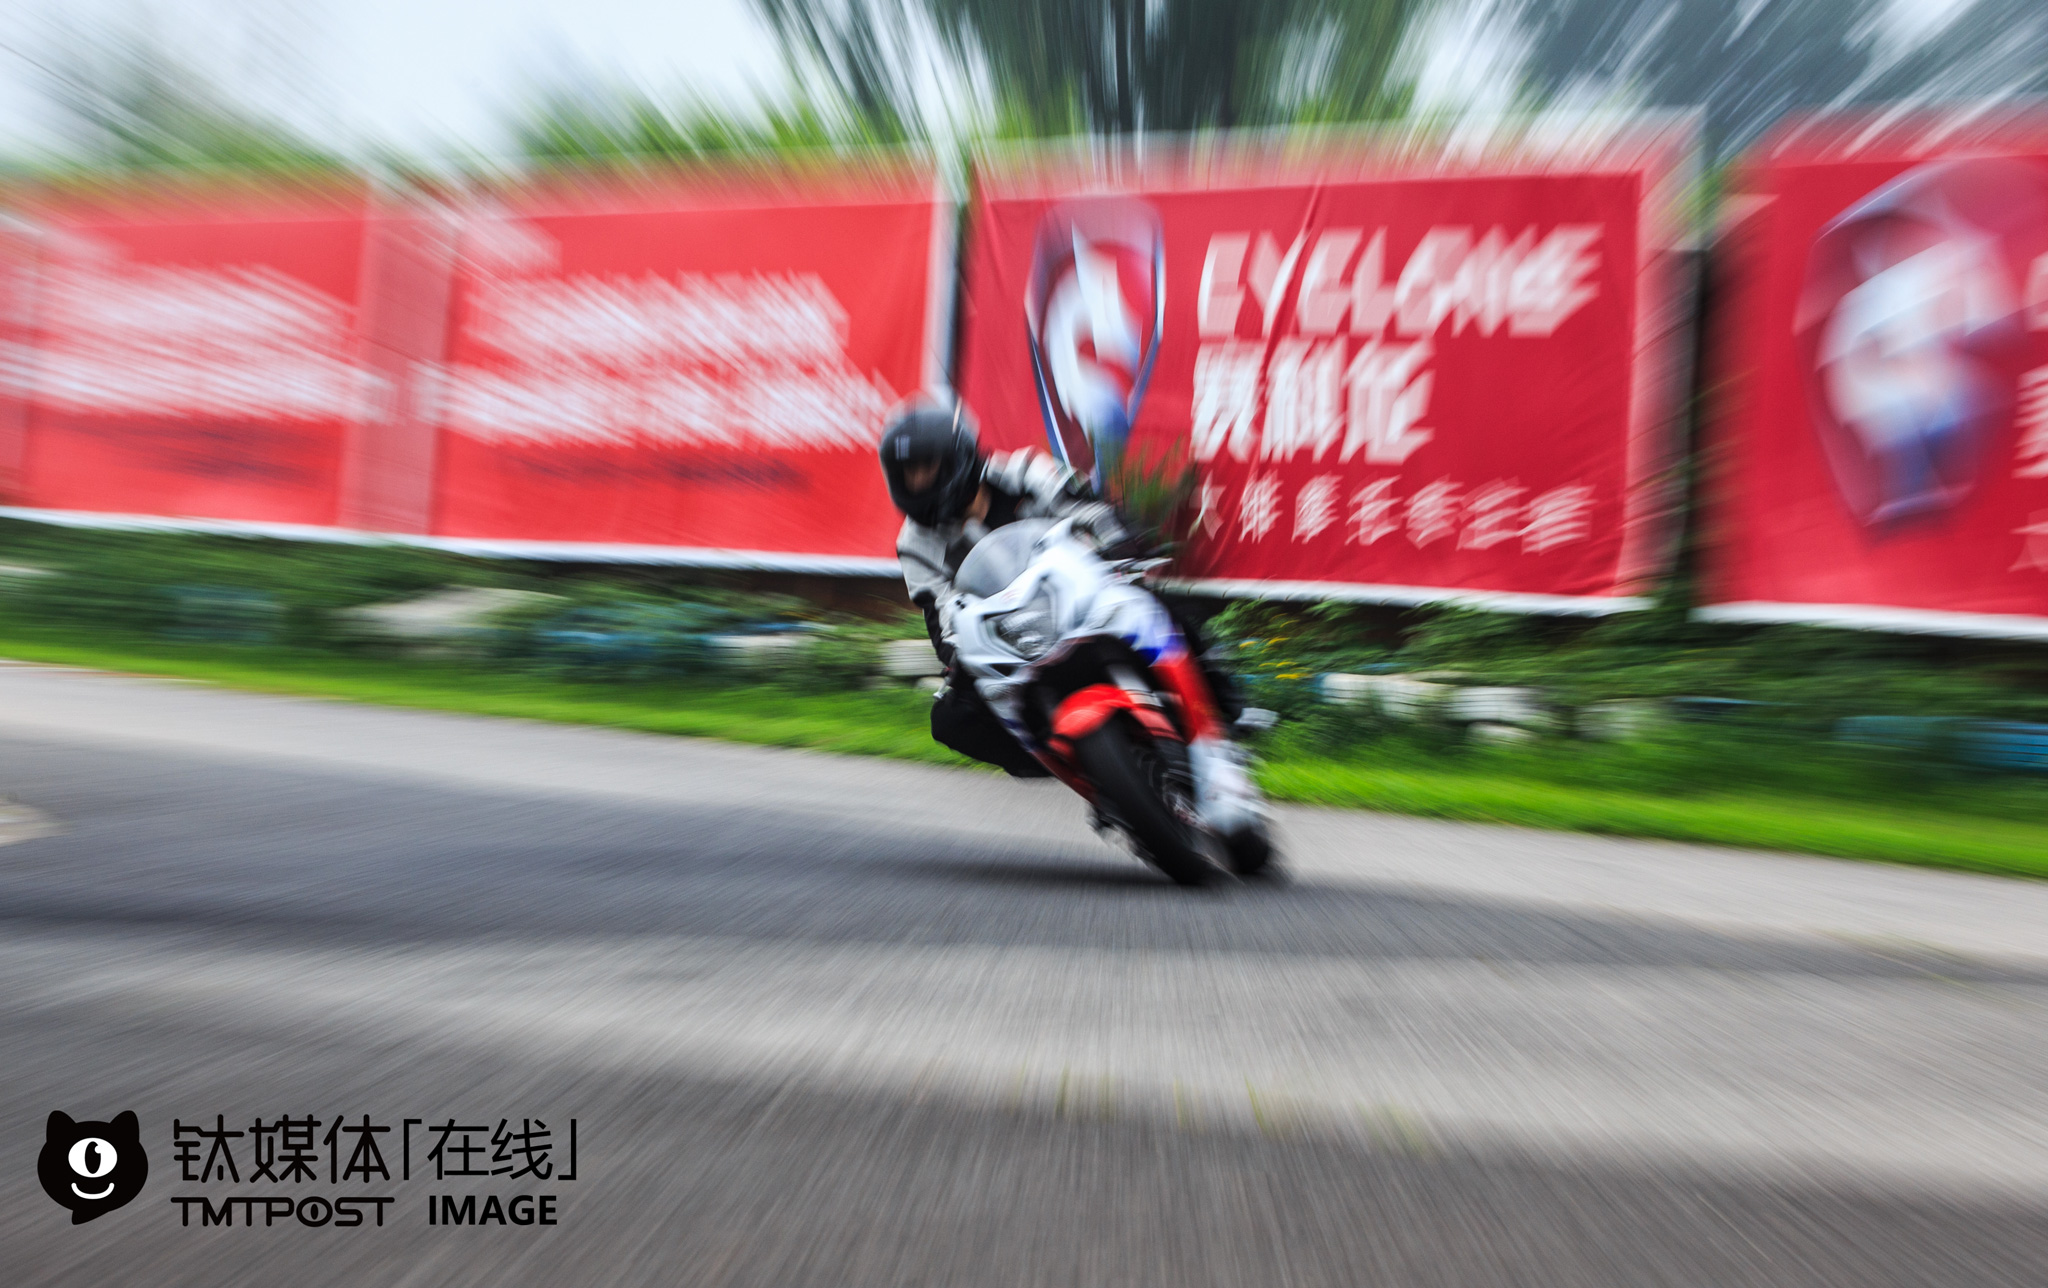 """On July, 30th, 2016, 30 motorcycle riders were attracted to a track test activity held by a Chinese motorcycle maker. The organizer charged every rider with merely 100 yuan. At present, there are only two race motorcycle circuits in Beijing. """"To purchase a new car in Beijing, you have to first draw a license plate lottery and get a plate. In comparison, it's more convenient to ride motorcycles, and you don't need to worry about traffic jam,"""" a motorcycle rider told TMTpost, """"Motorcycles made by Chinese motorcycle makers are certainly less welcome in the Chinese market, but they still have a large market."""" Statistics suggest that there are over 160 million race motorcycles and 30 million race motorcycle riders in China, and that the total transaction volume of second-hand motorcycles is over 6 million yuan (over $ 900,000)."""